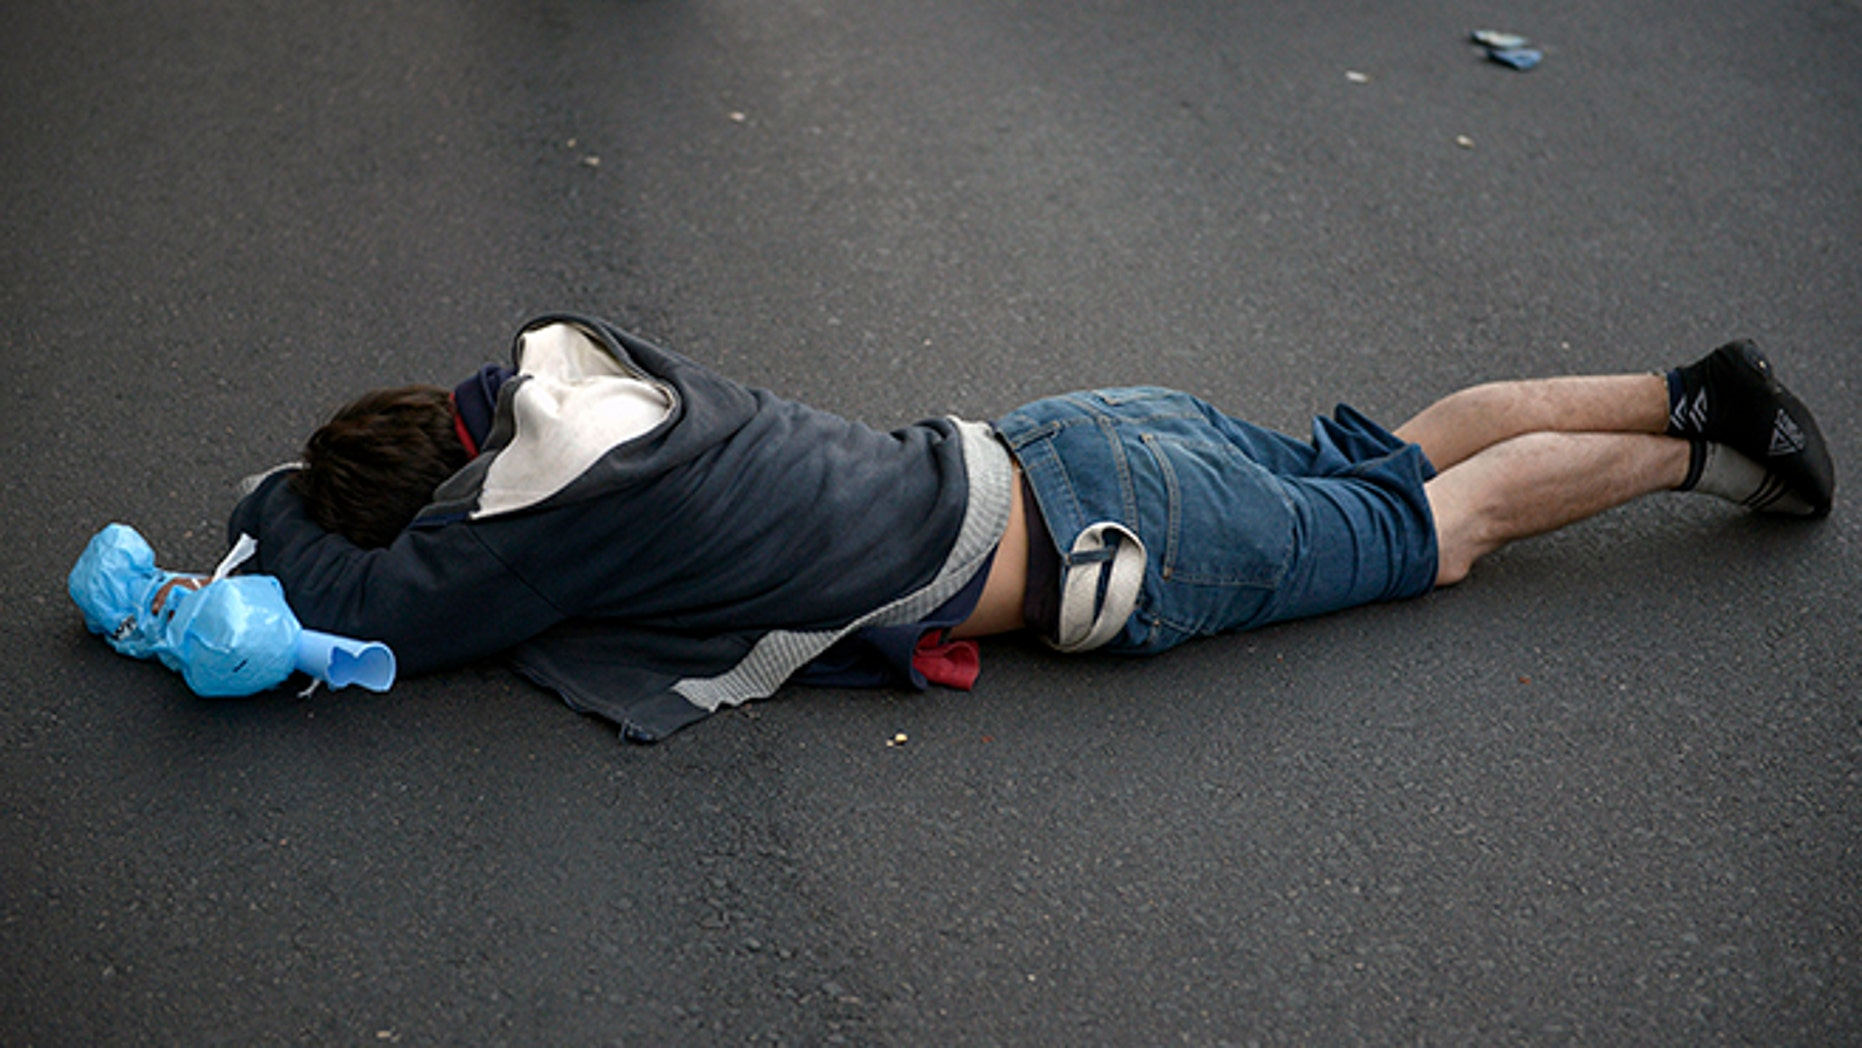 A fan of Uruguay's national soccer team lies on the ground as he reacts despondenlty, after his team lost to Costa Rica, in downtown in Montevideo, Uruguay, Saturday, June 14, 2014. Costa Rica upset Uruguay 3-1 in the first game of group D of the Soccer World Cup. (AP Photo/Matilde Campodonico)